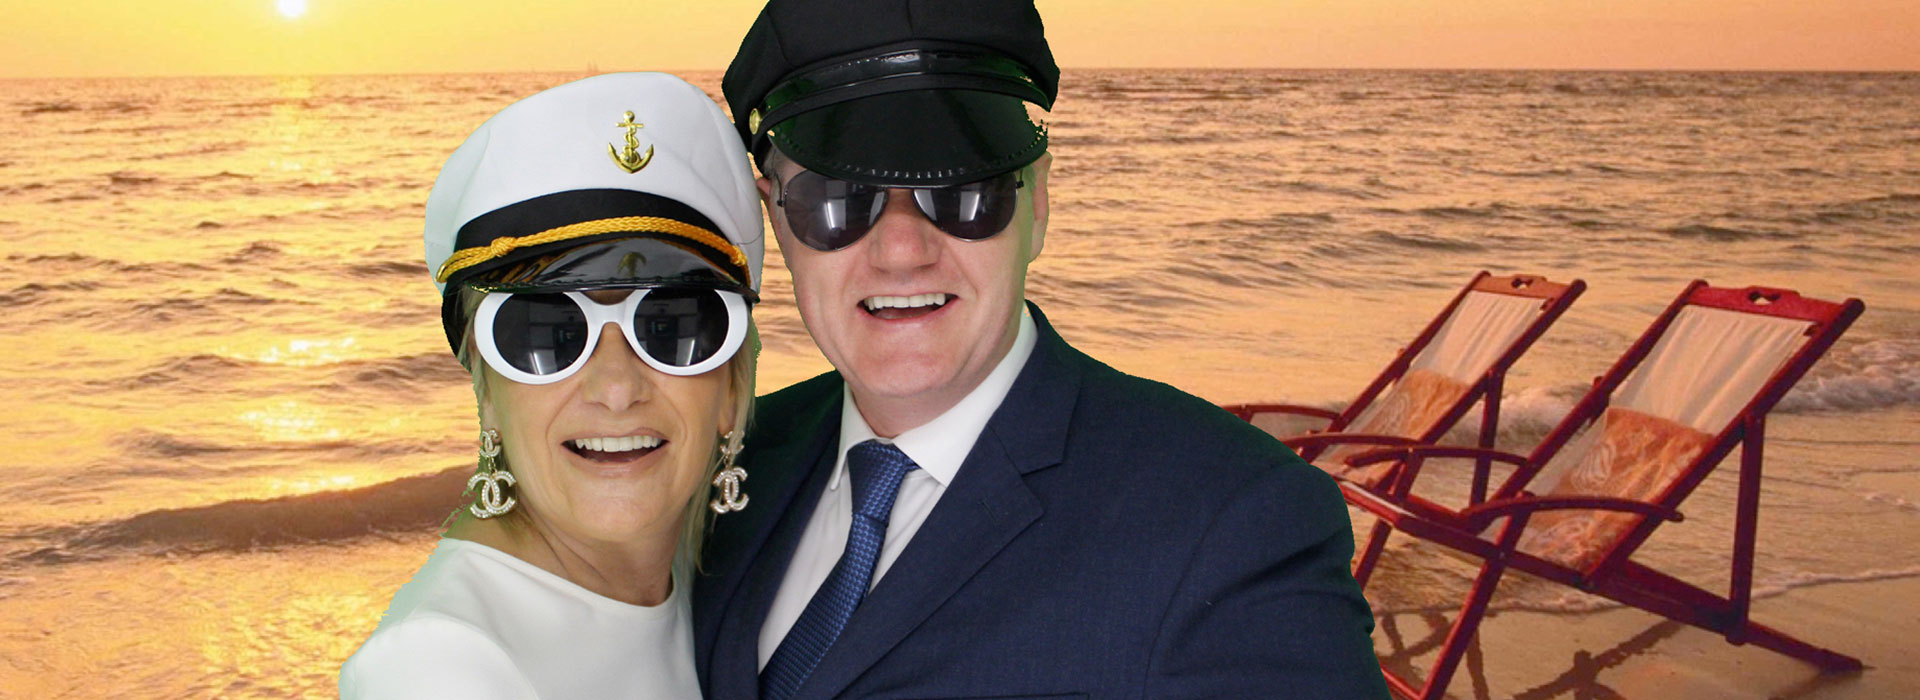 Green Screen image of Beach behind guests at a Party Photo Booth Hire